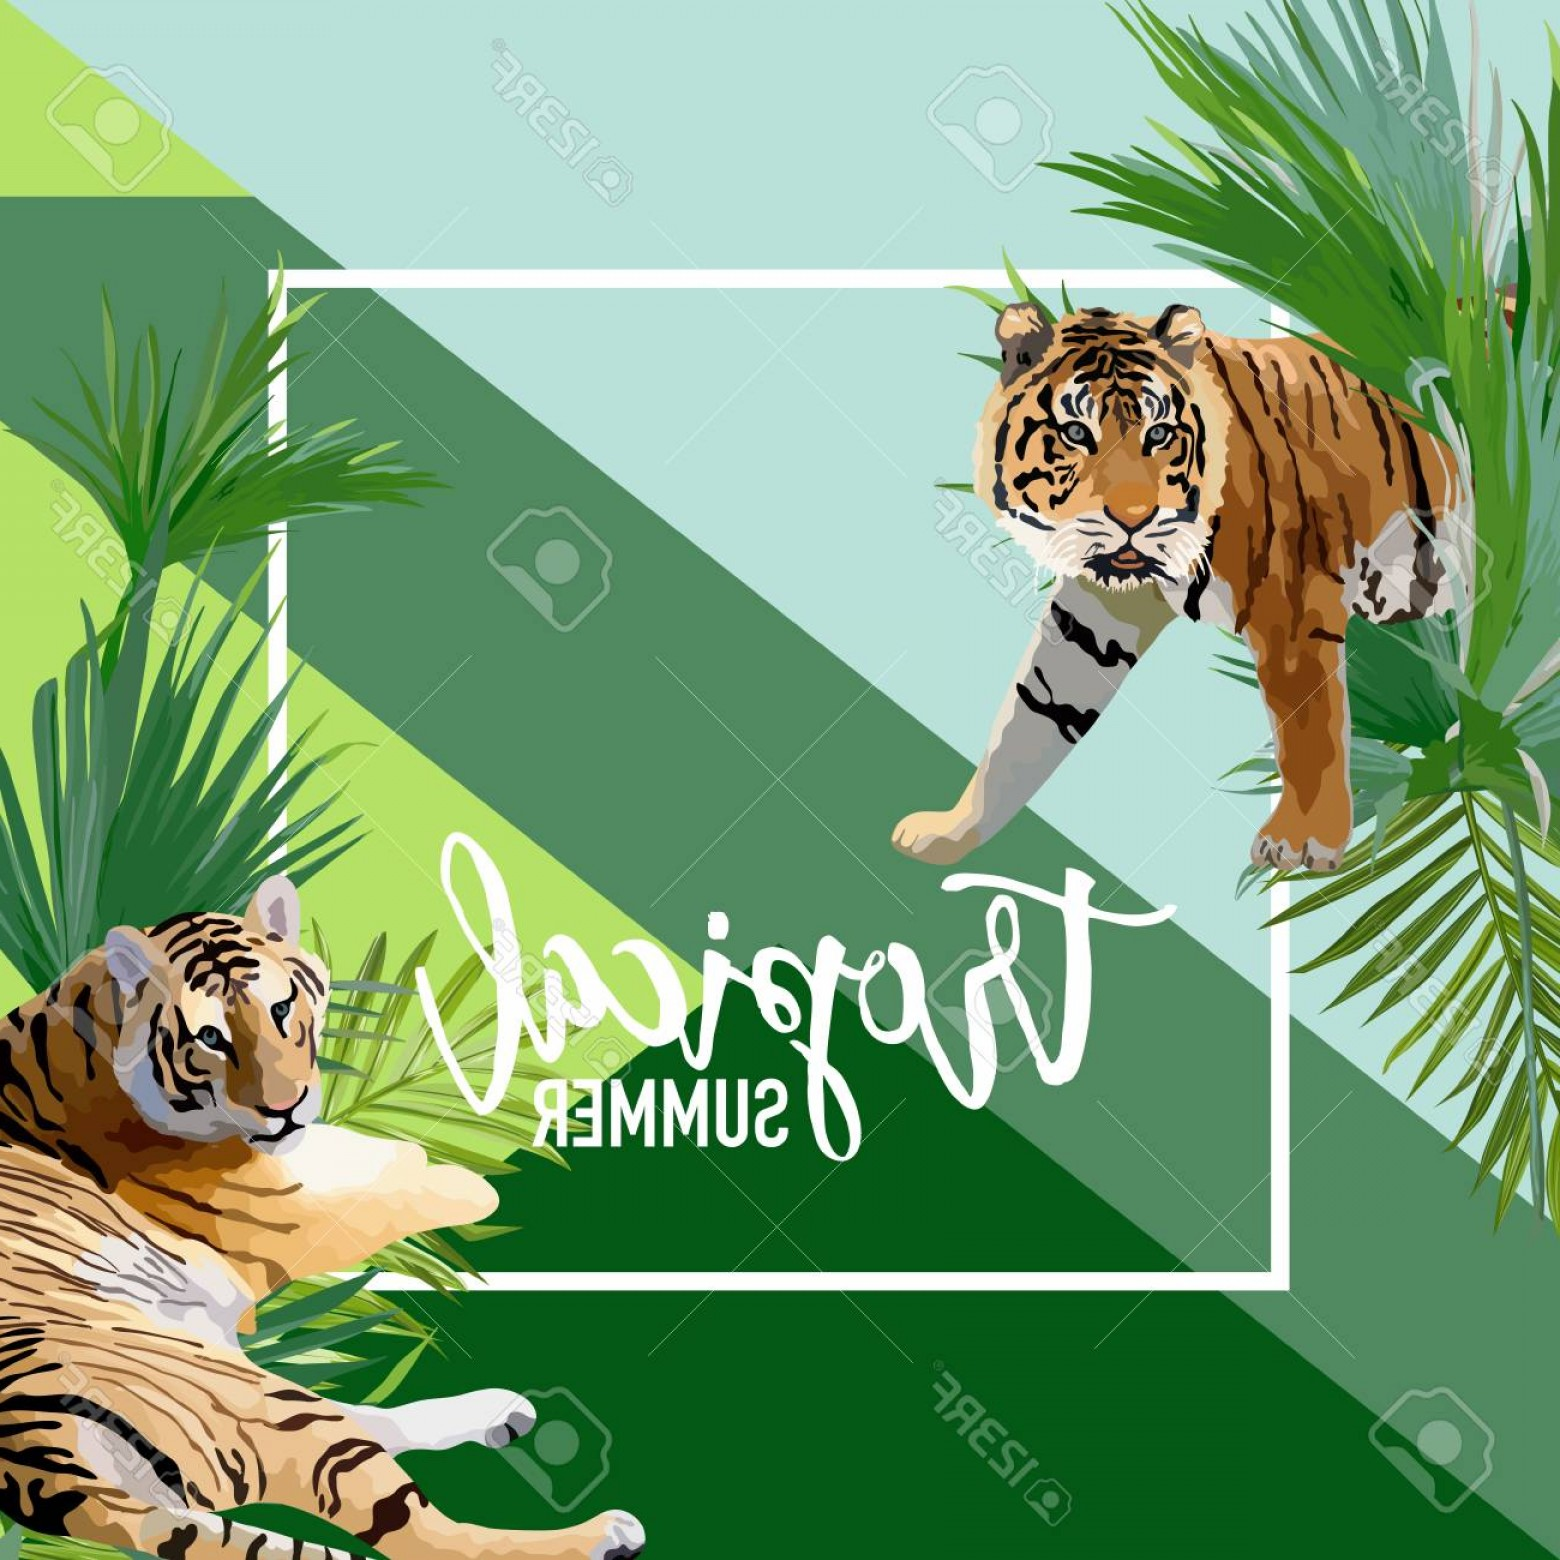 Green Tiger Vector: Photostock Vector Tropical Flowers And Tiger Summer Banner Graphic Background Exotic Floral Invitation Flyer Or Card M